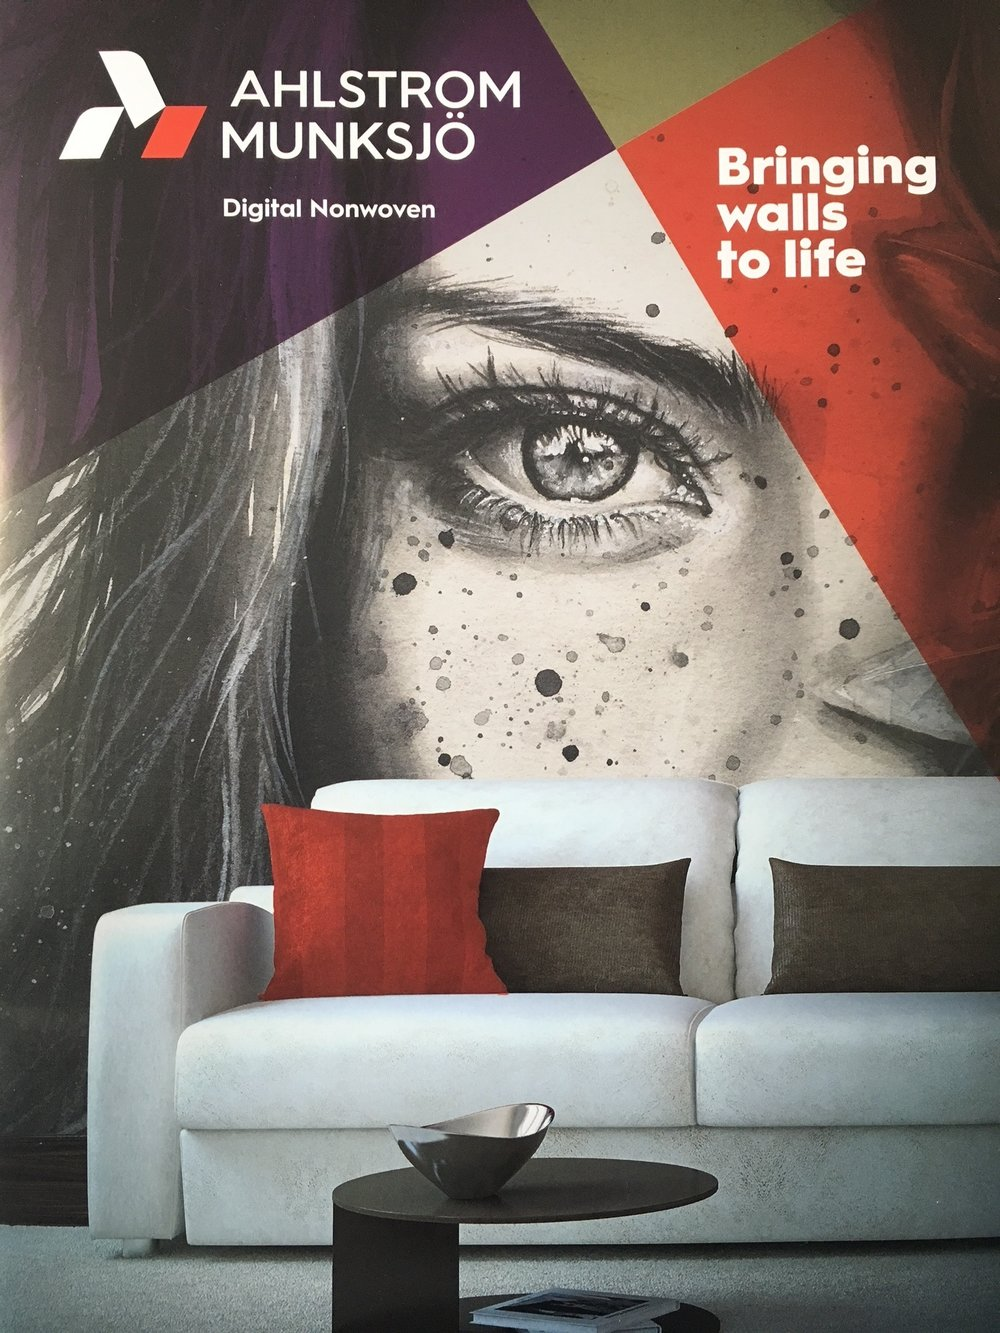 Material innovation is a key part of the development of digital wallcoverings